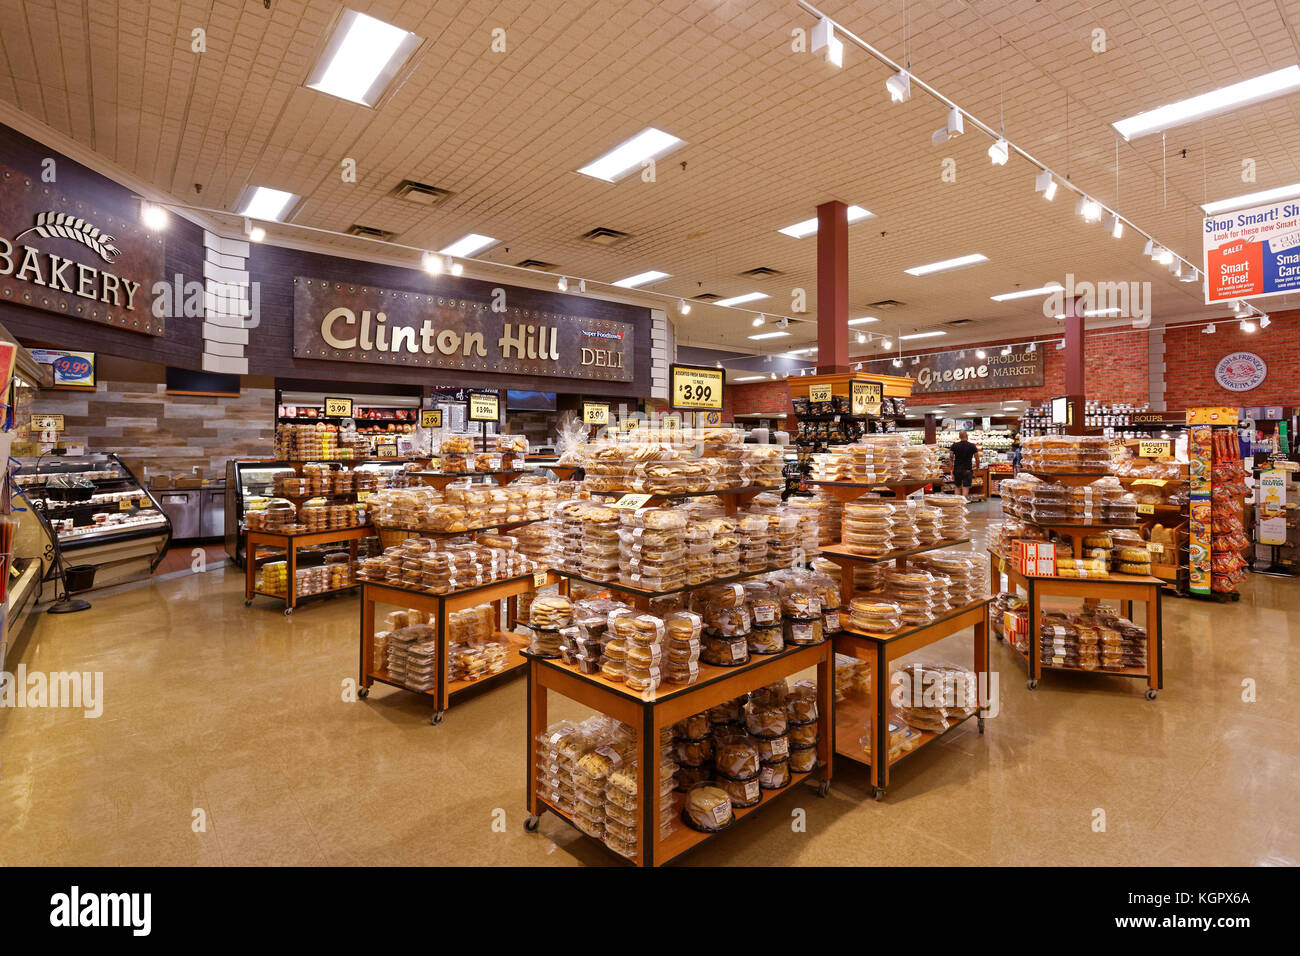 Grocery Store Bread Aisle Stock Photos & Grocery Store Bread